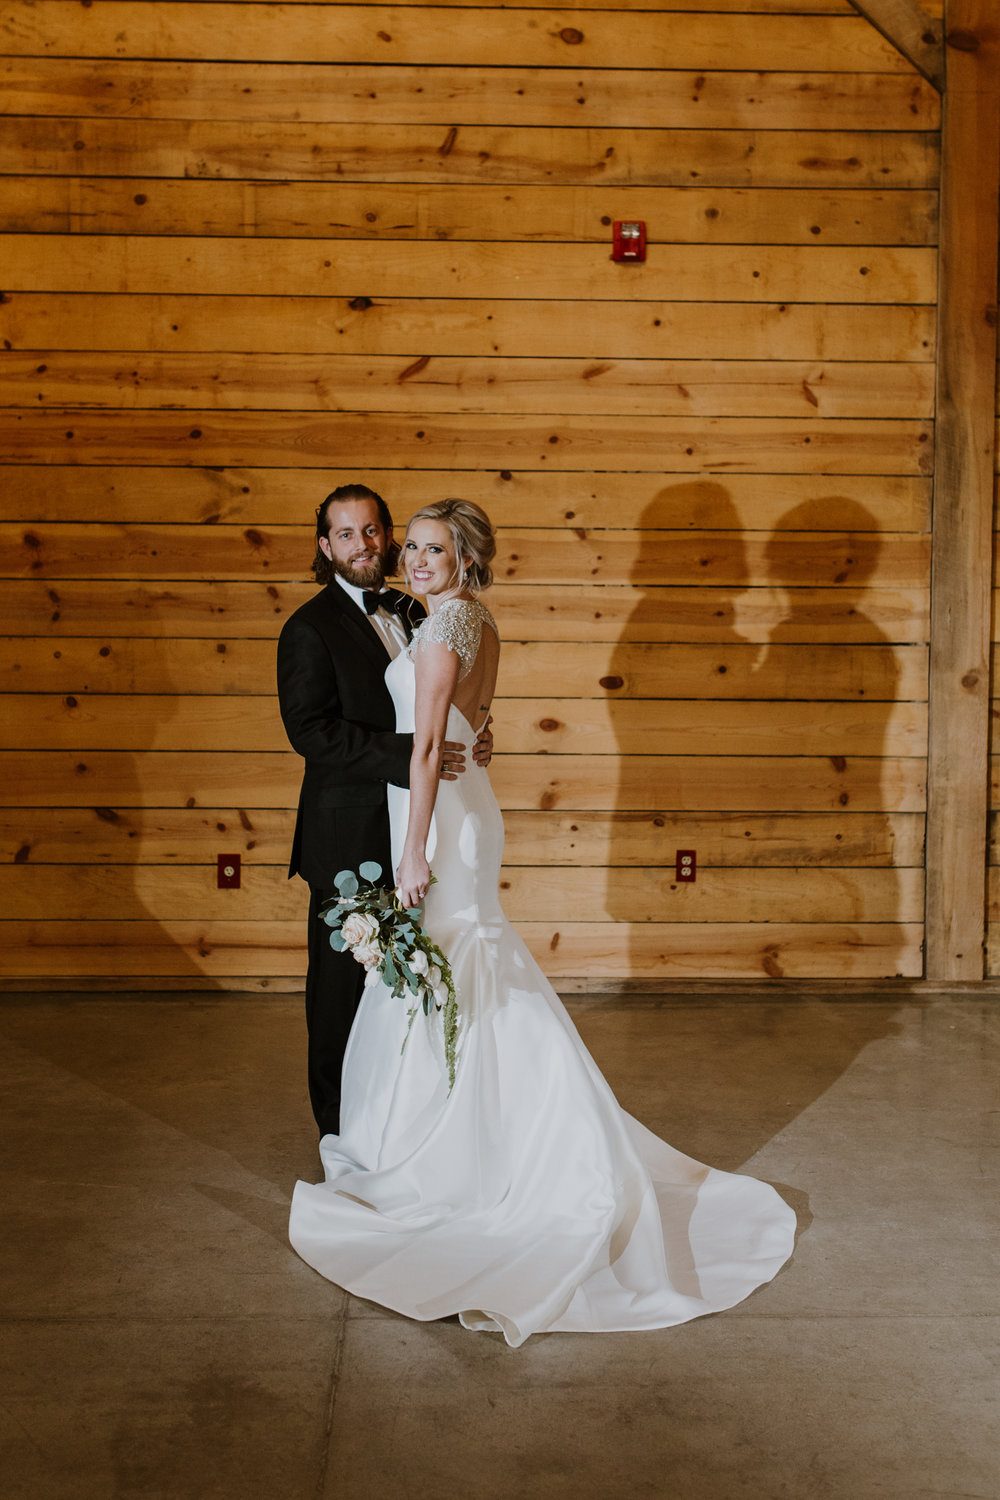 addisongrovewedding14.jpg